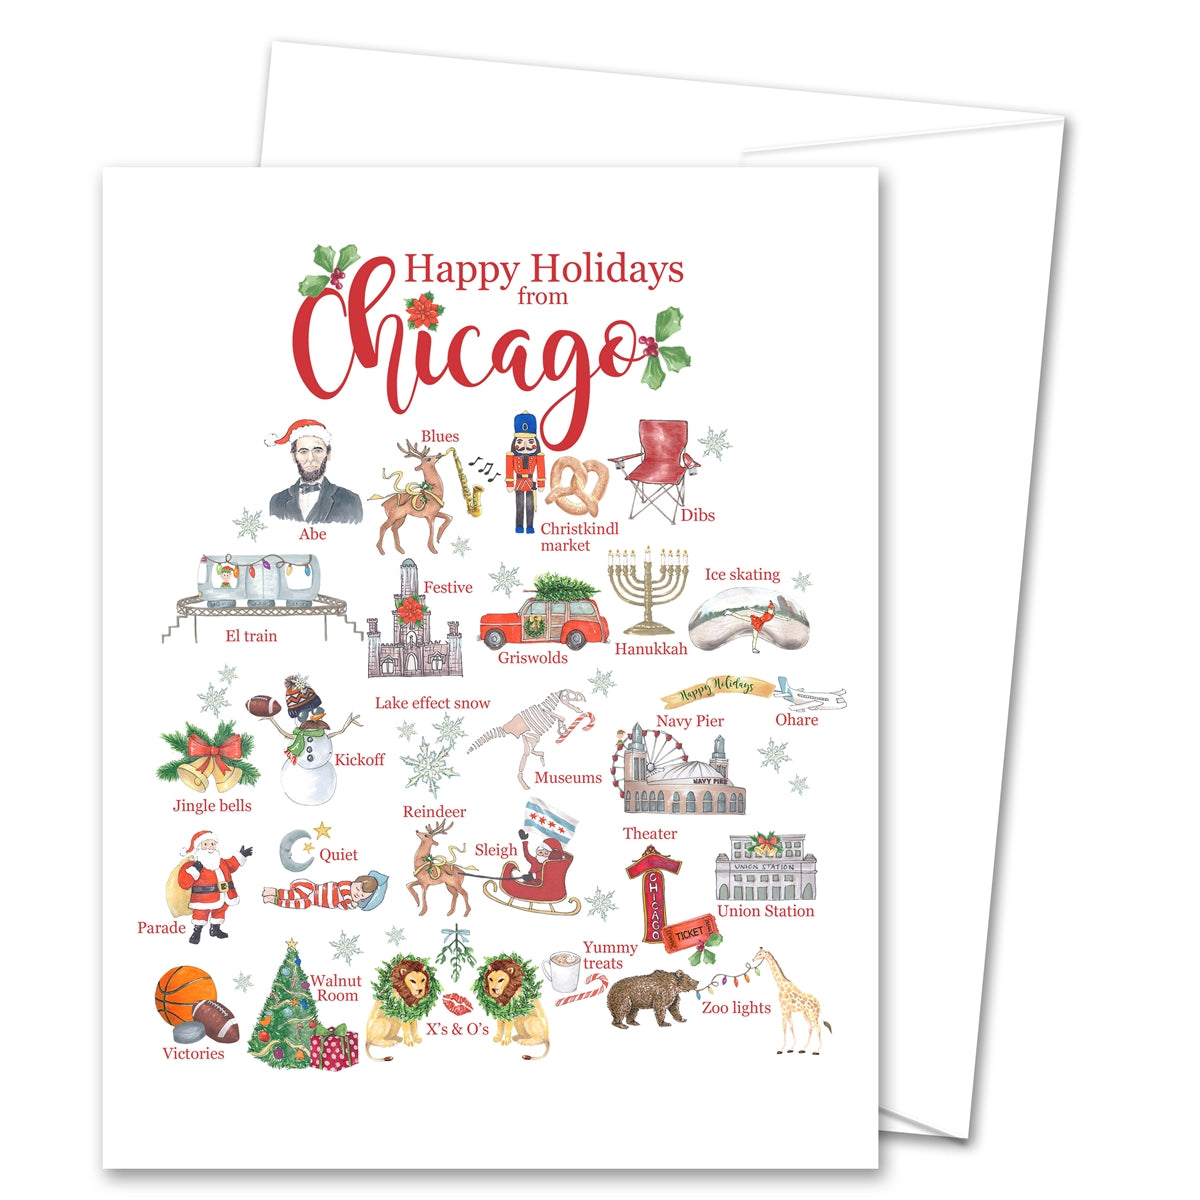 Happy Holidays From Chicago Alphabet Greeting Card (blank inside)